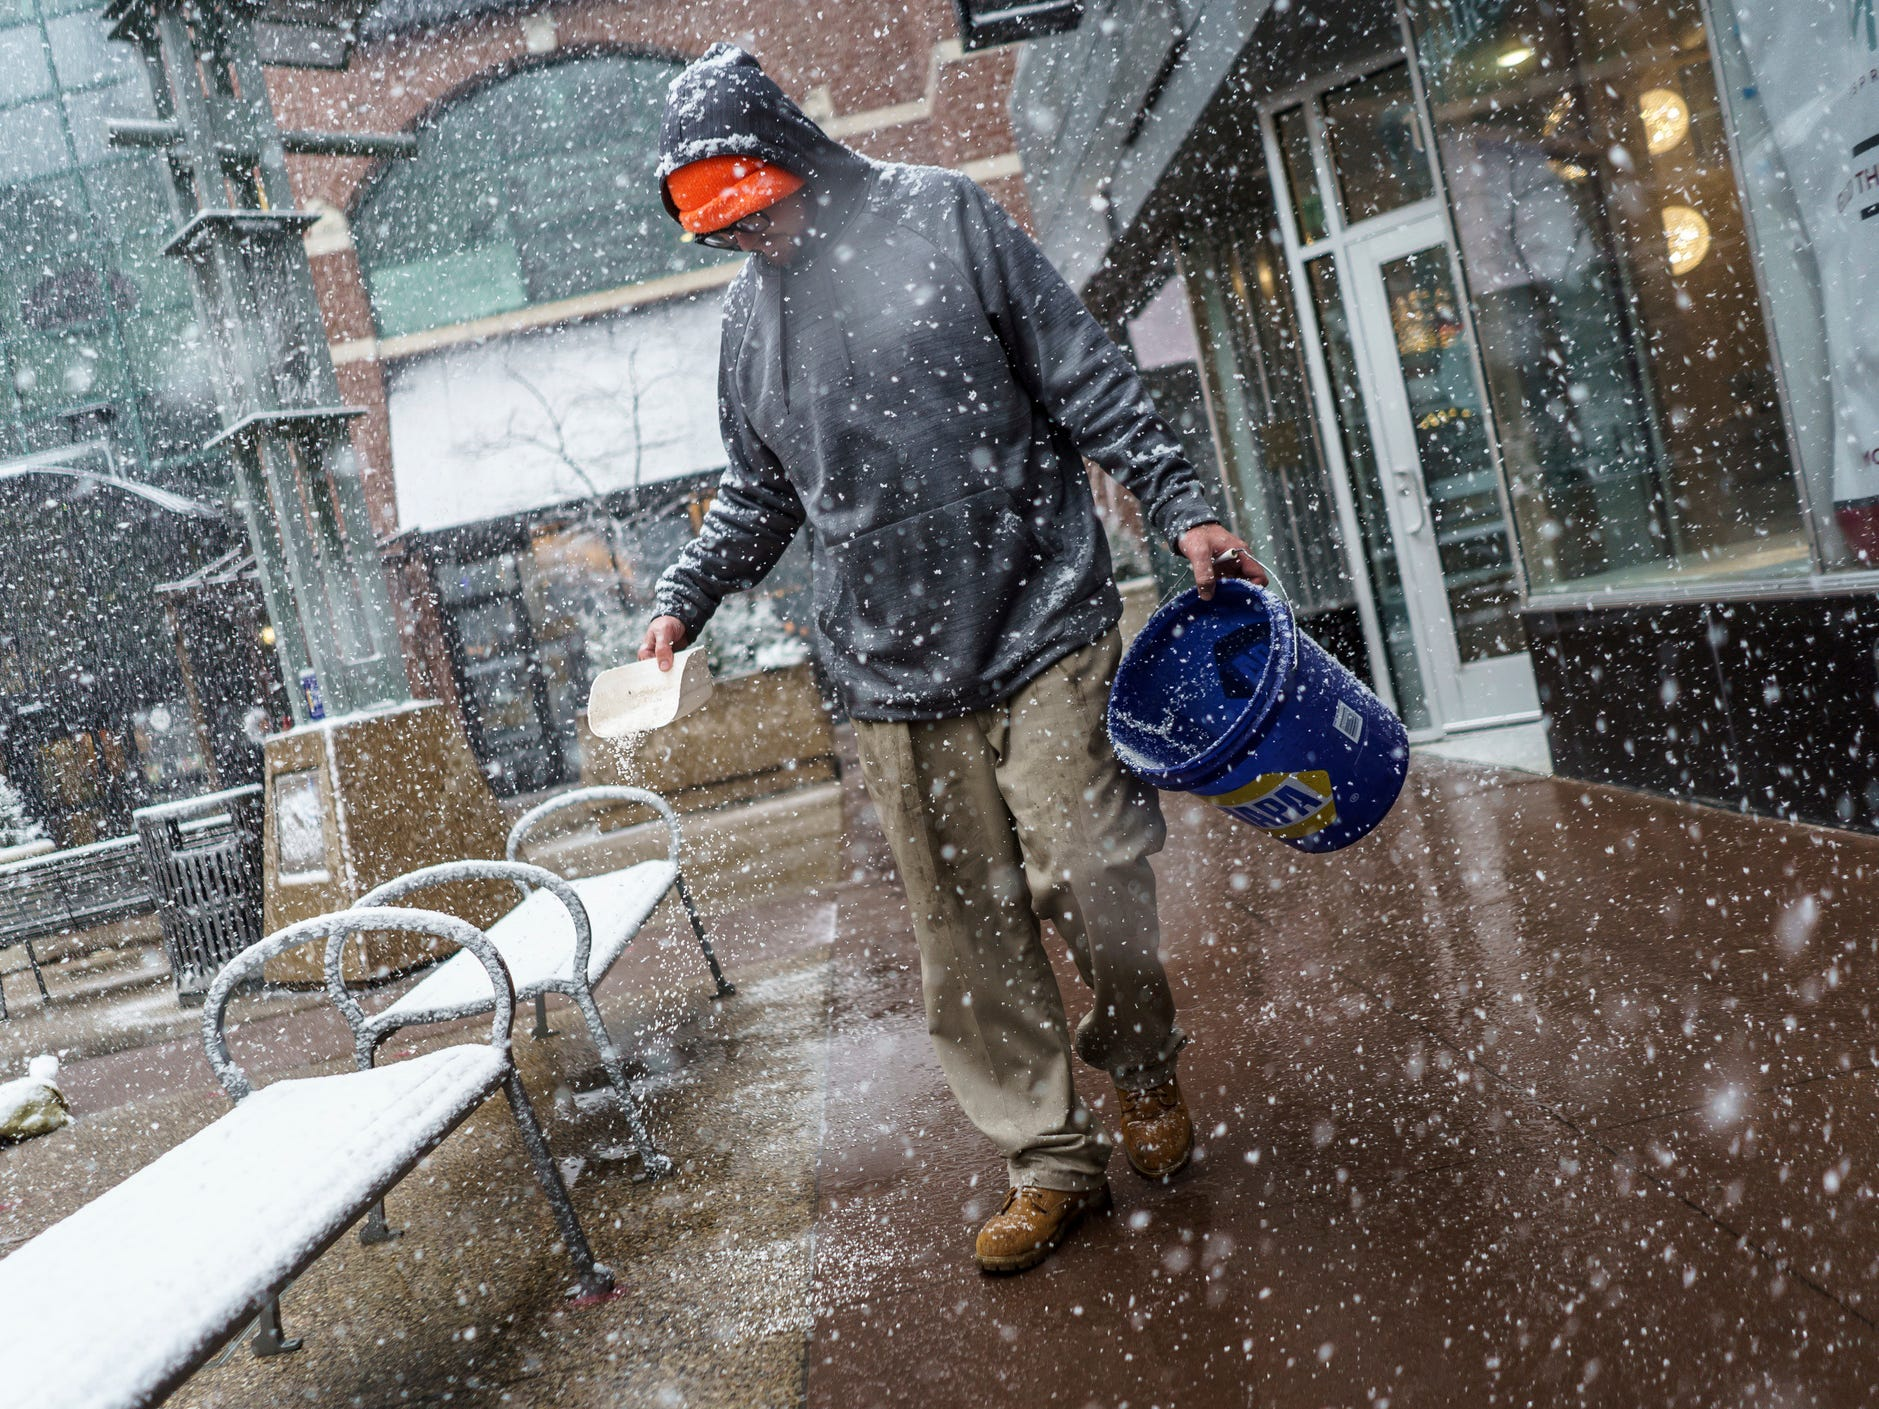 Joshua Carpenter, with Meyer Outdoor Services, sprinkles salt on Peace Plaza sidewalk as snow falls Wednesday, April 10, 2019, in Rochester, Minn.